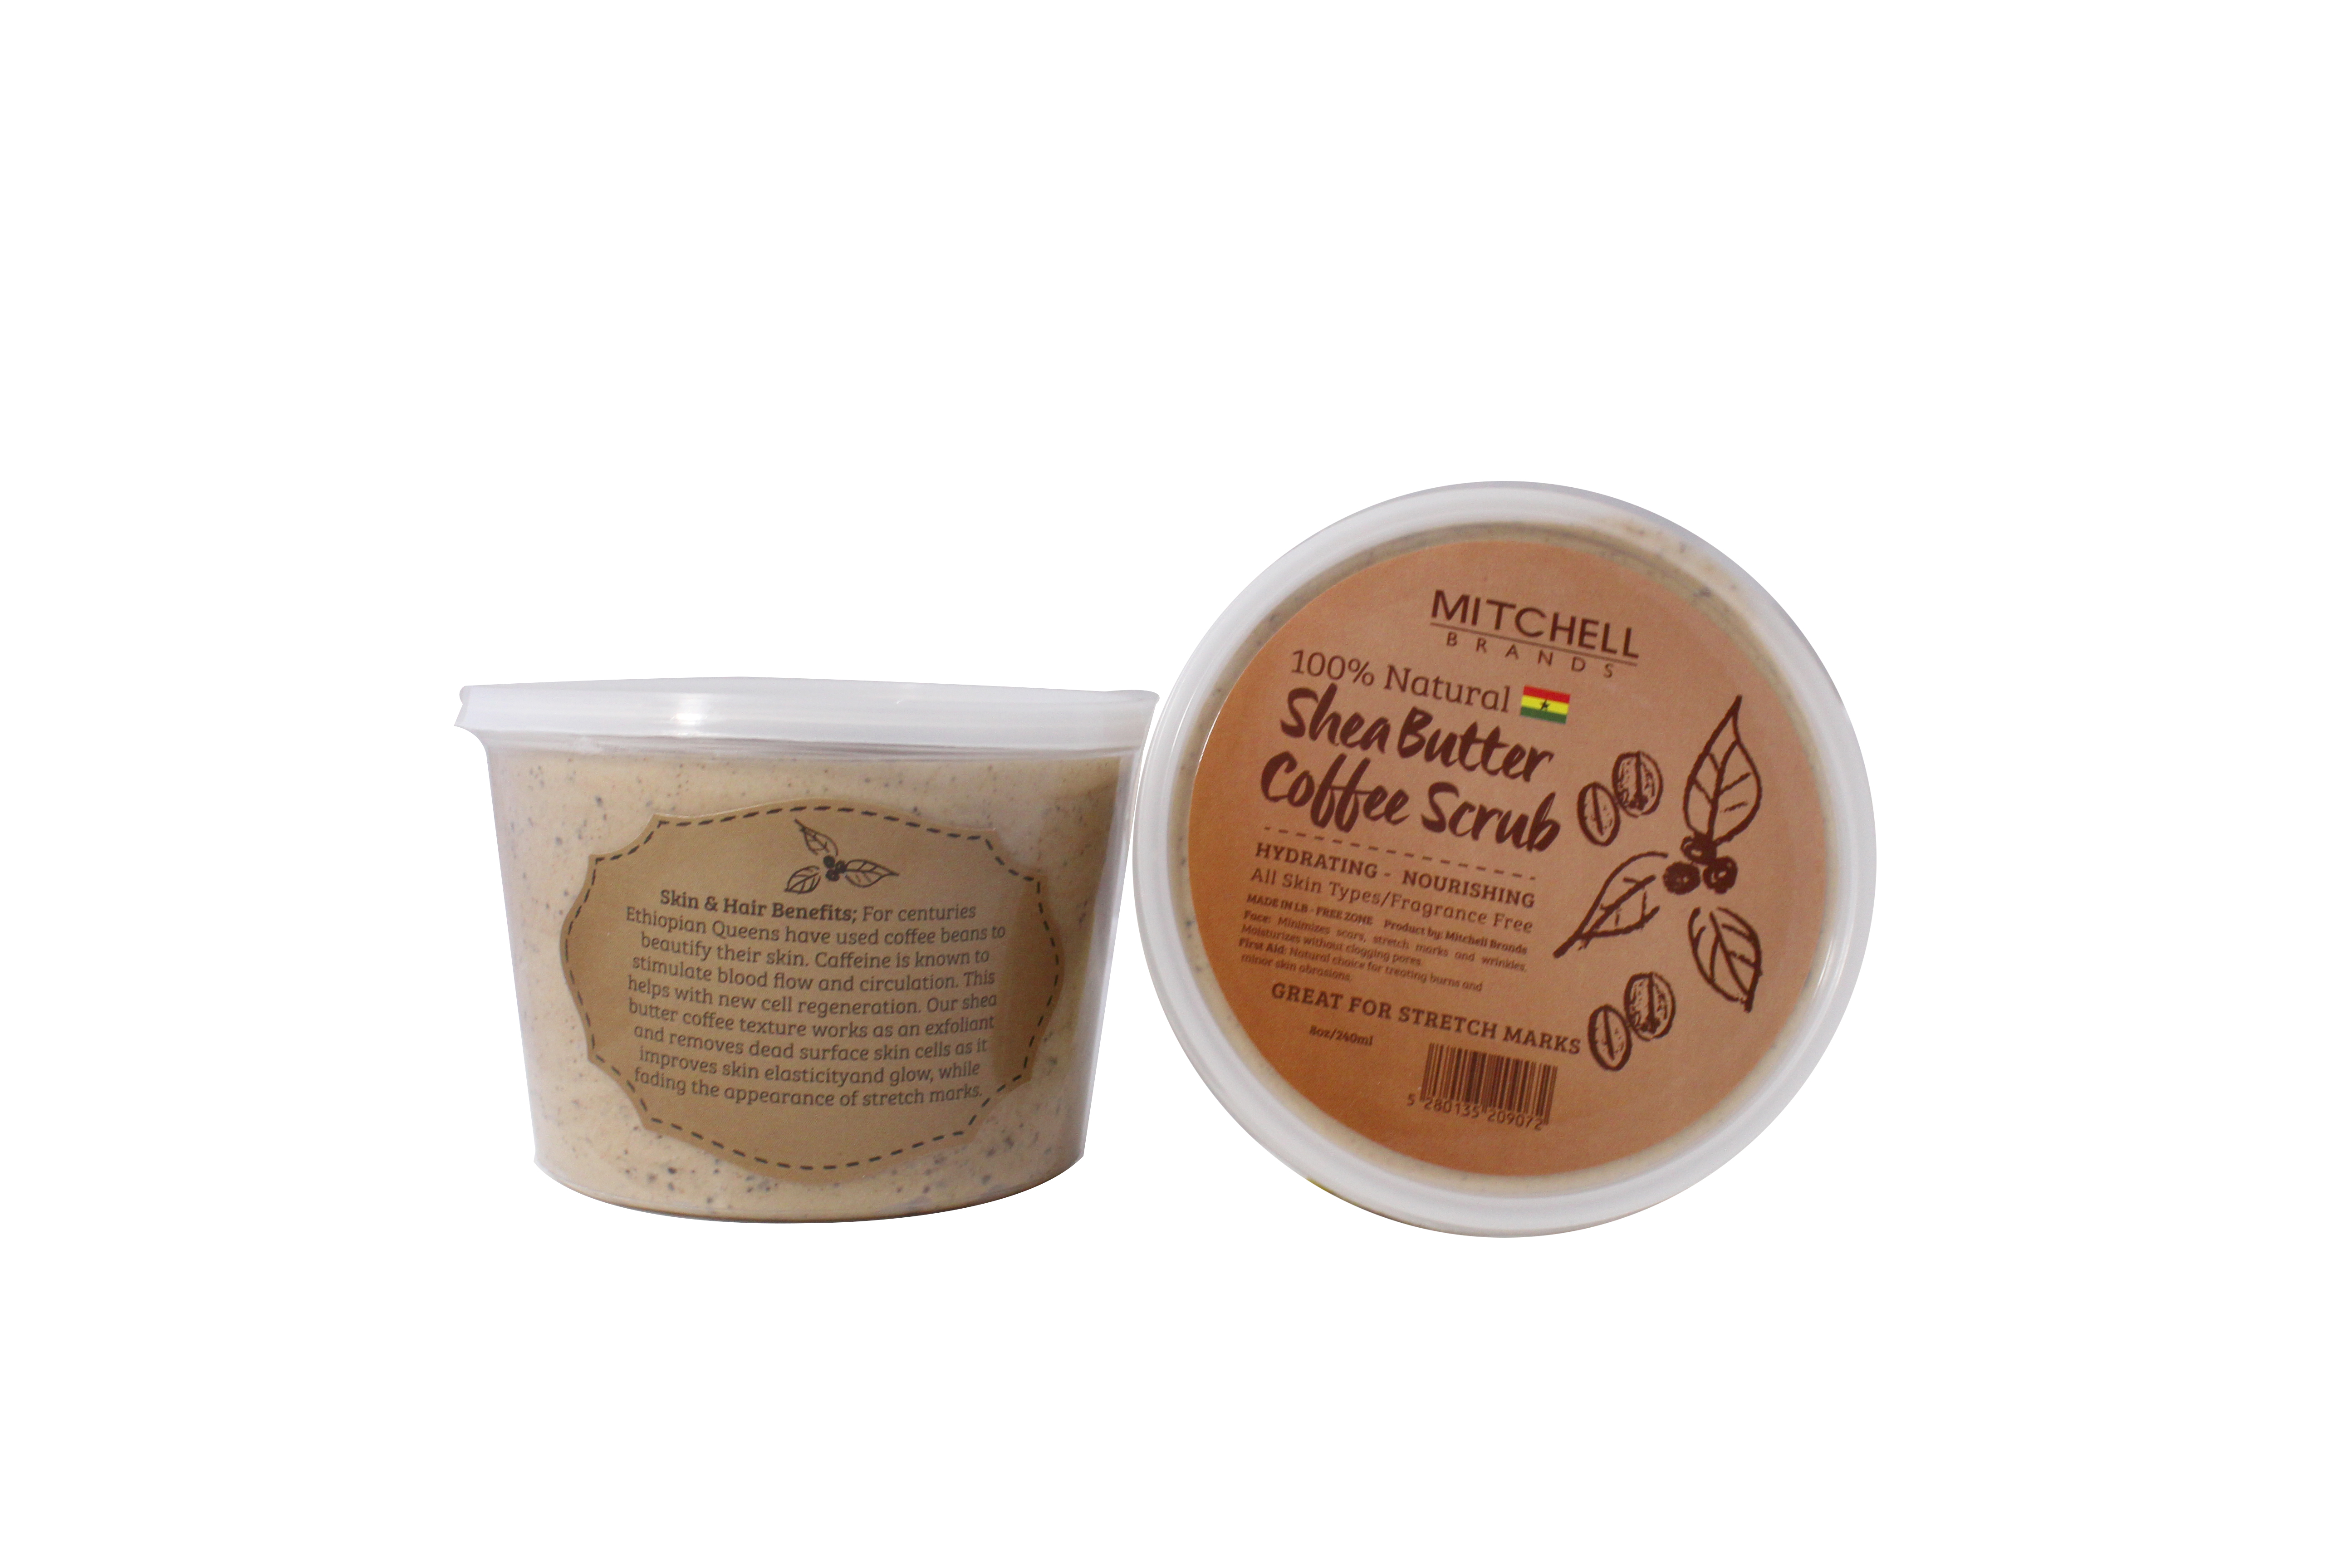 100% Natural Shea Butter Jar Enhanced With Coffee Scrub 8oz and 13.5oz